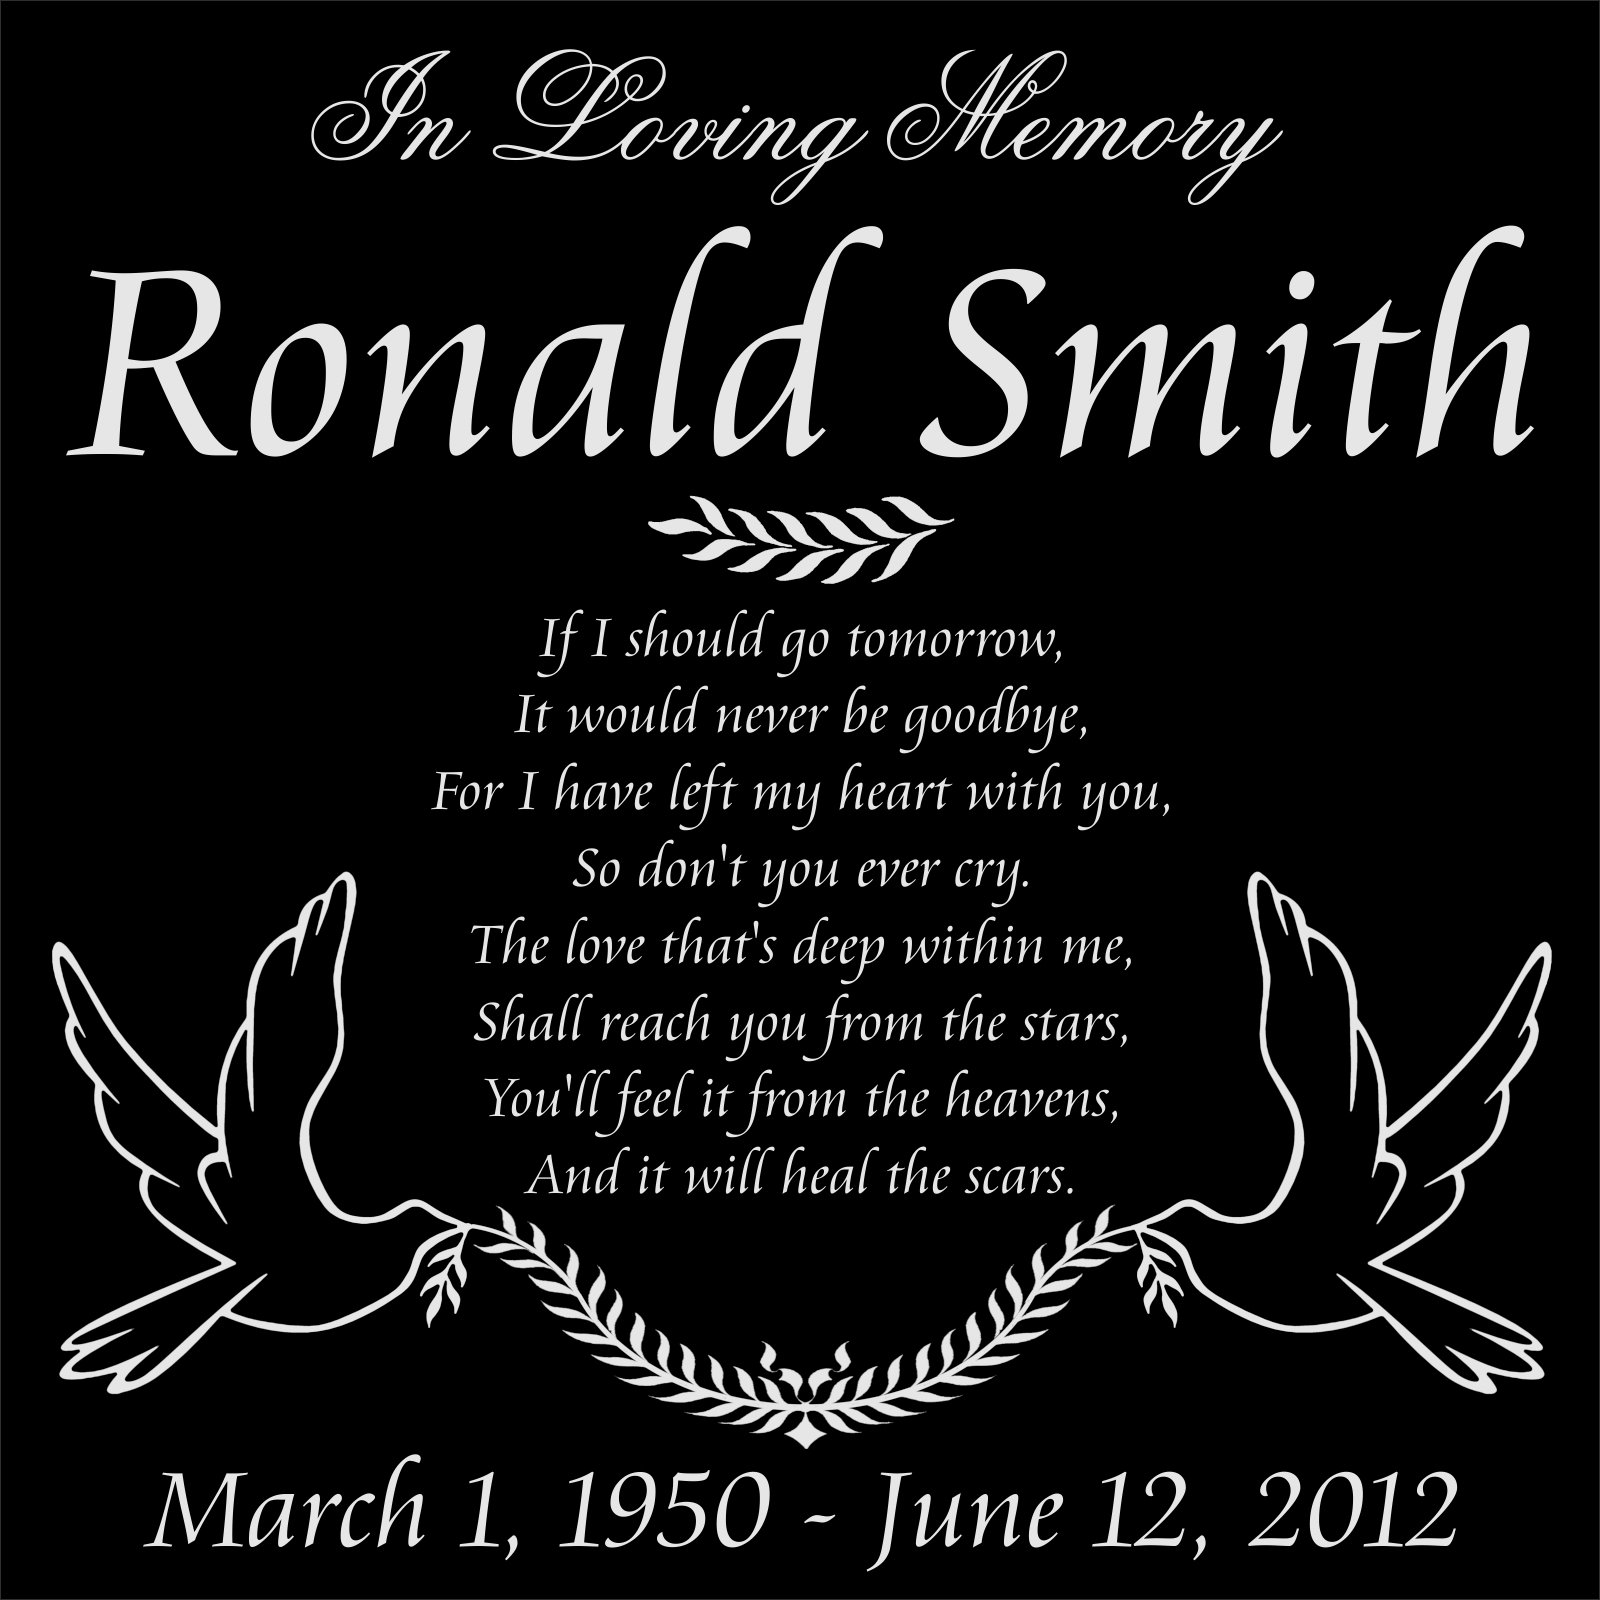 Customized Personalized Doves of Peace Personal Memorial 12x12 Inch Engraved Granite Grave Marker Headstone RS1